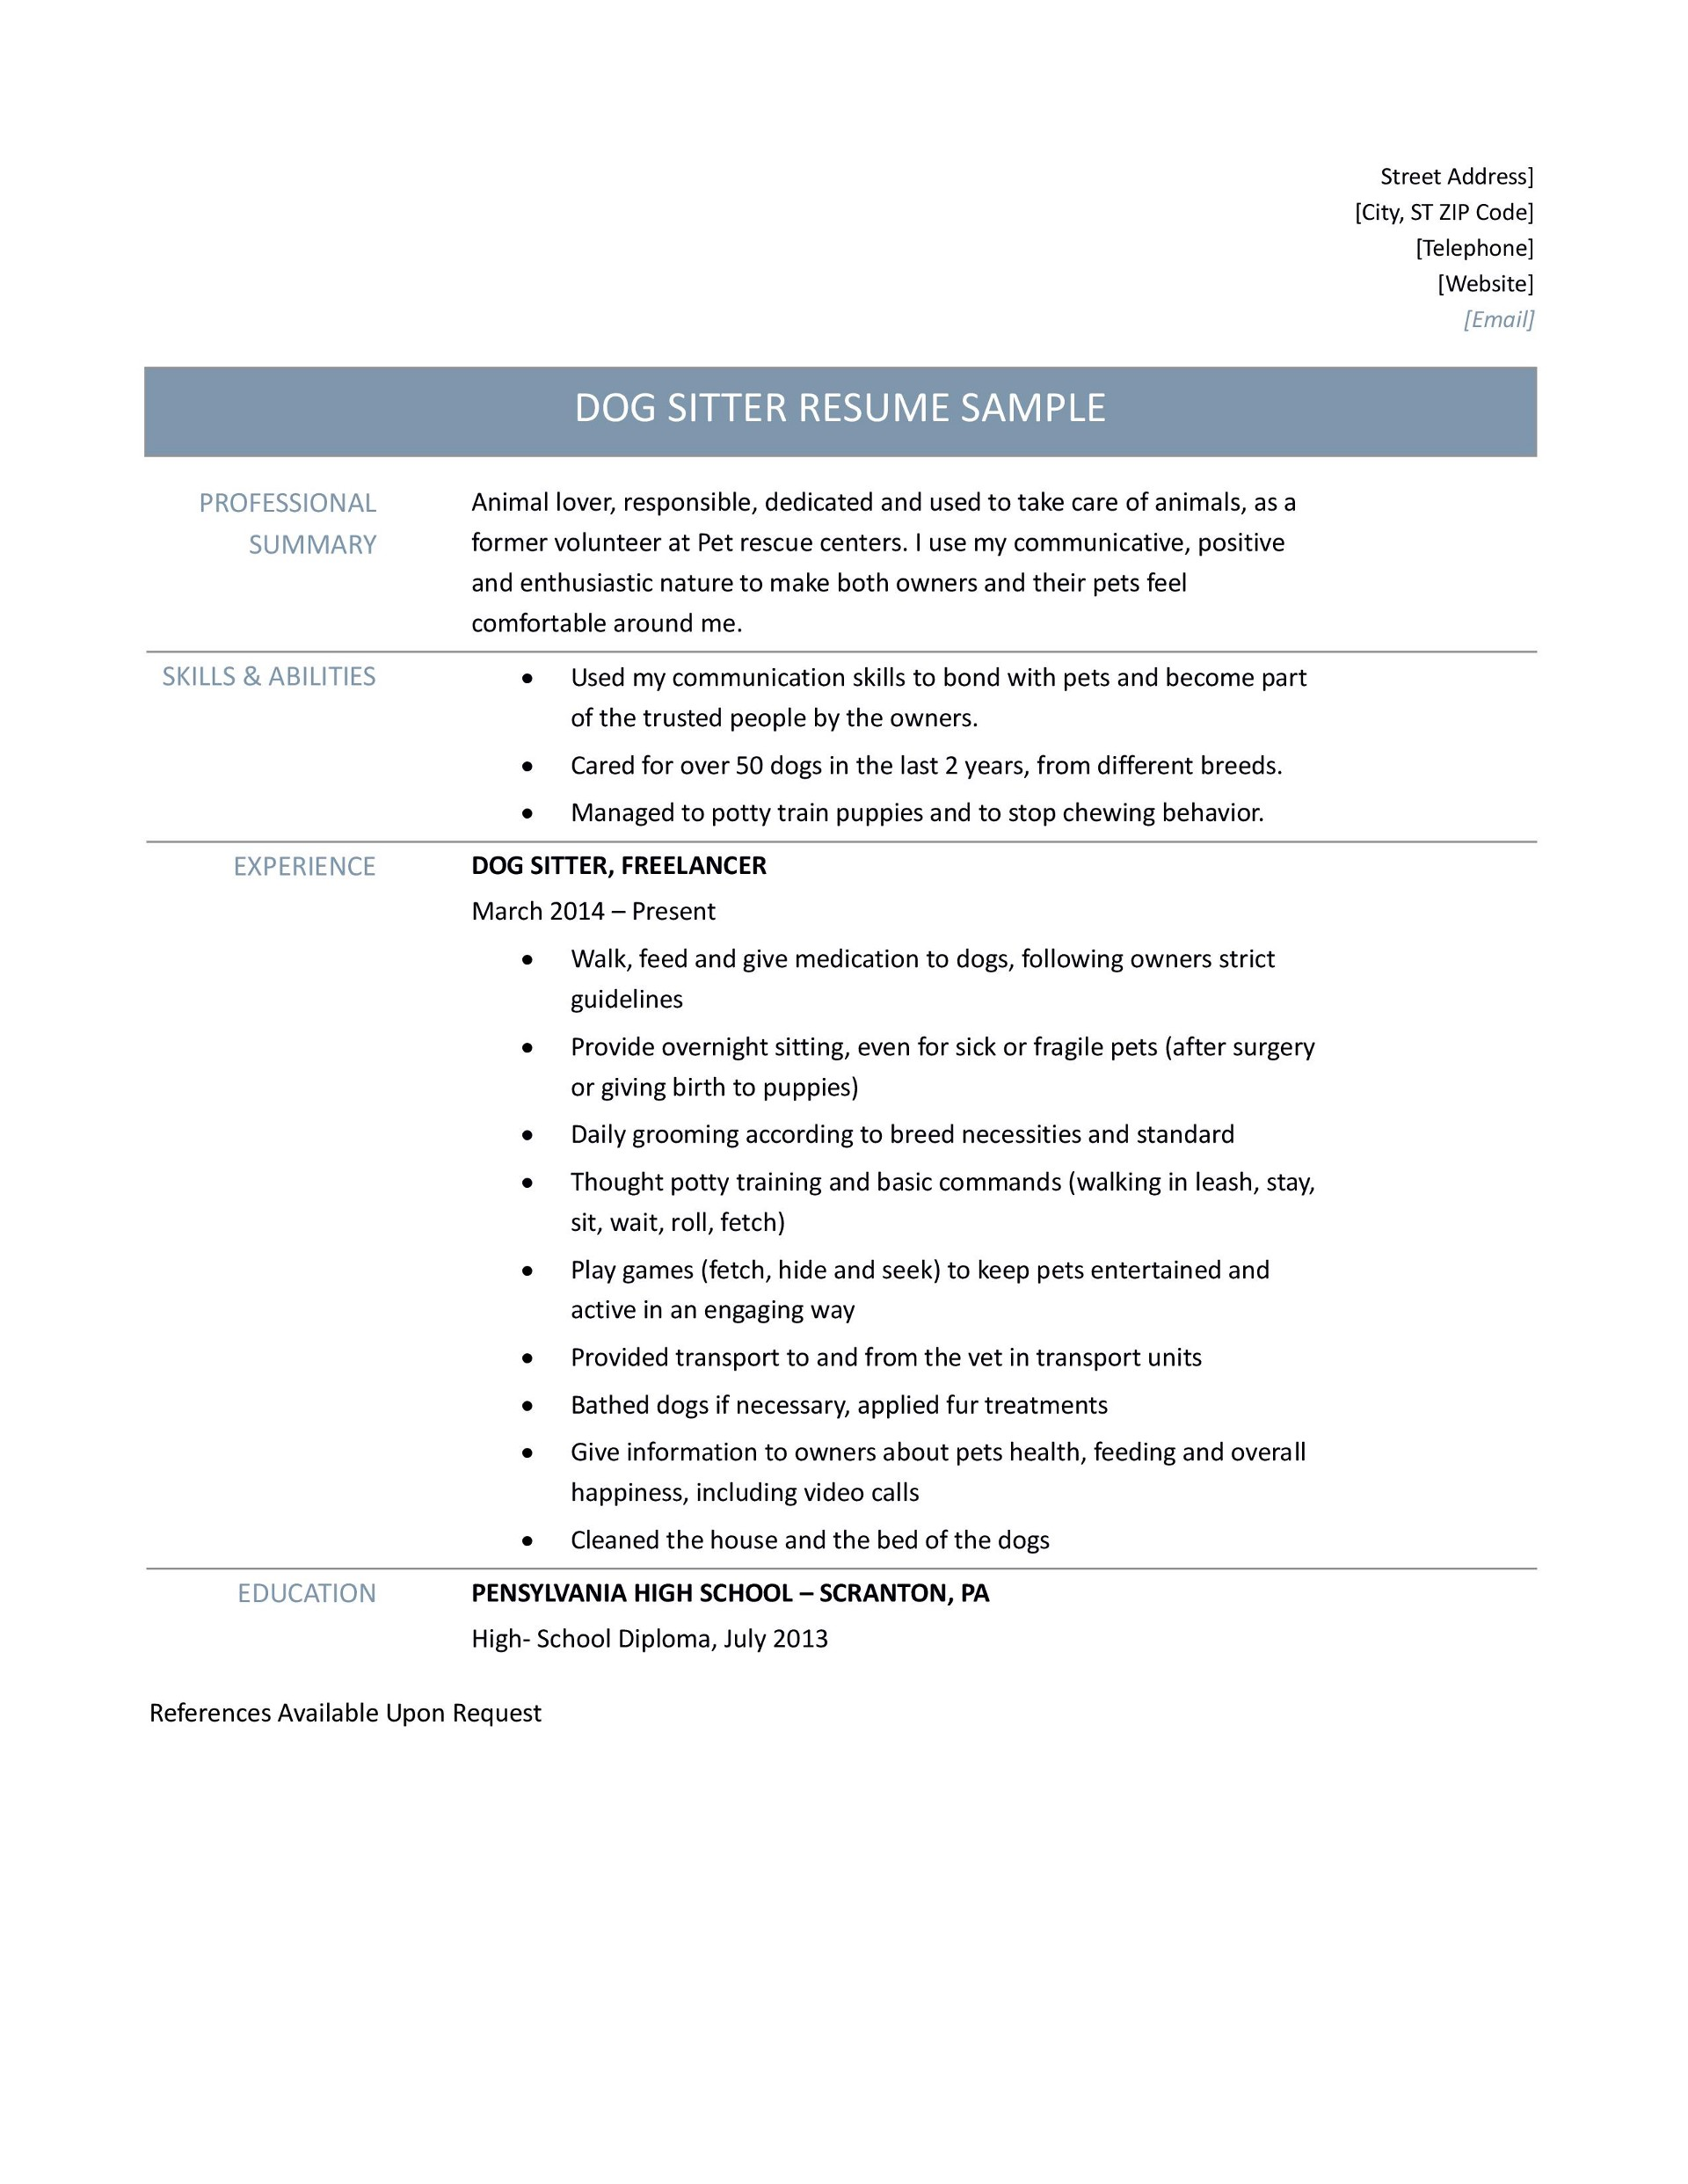 Dog Sitter Resume Samples Tips and Template Online Resume Builders